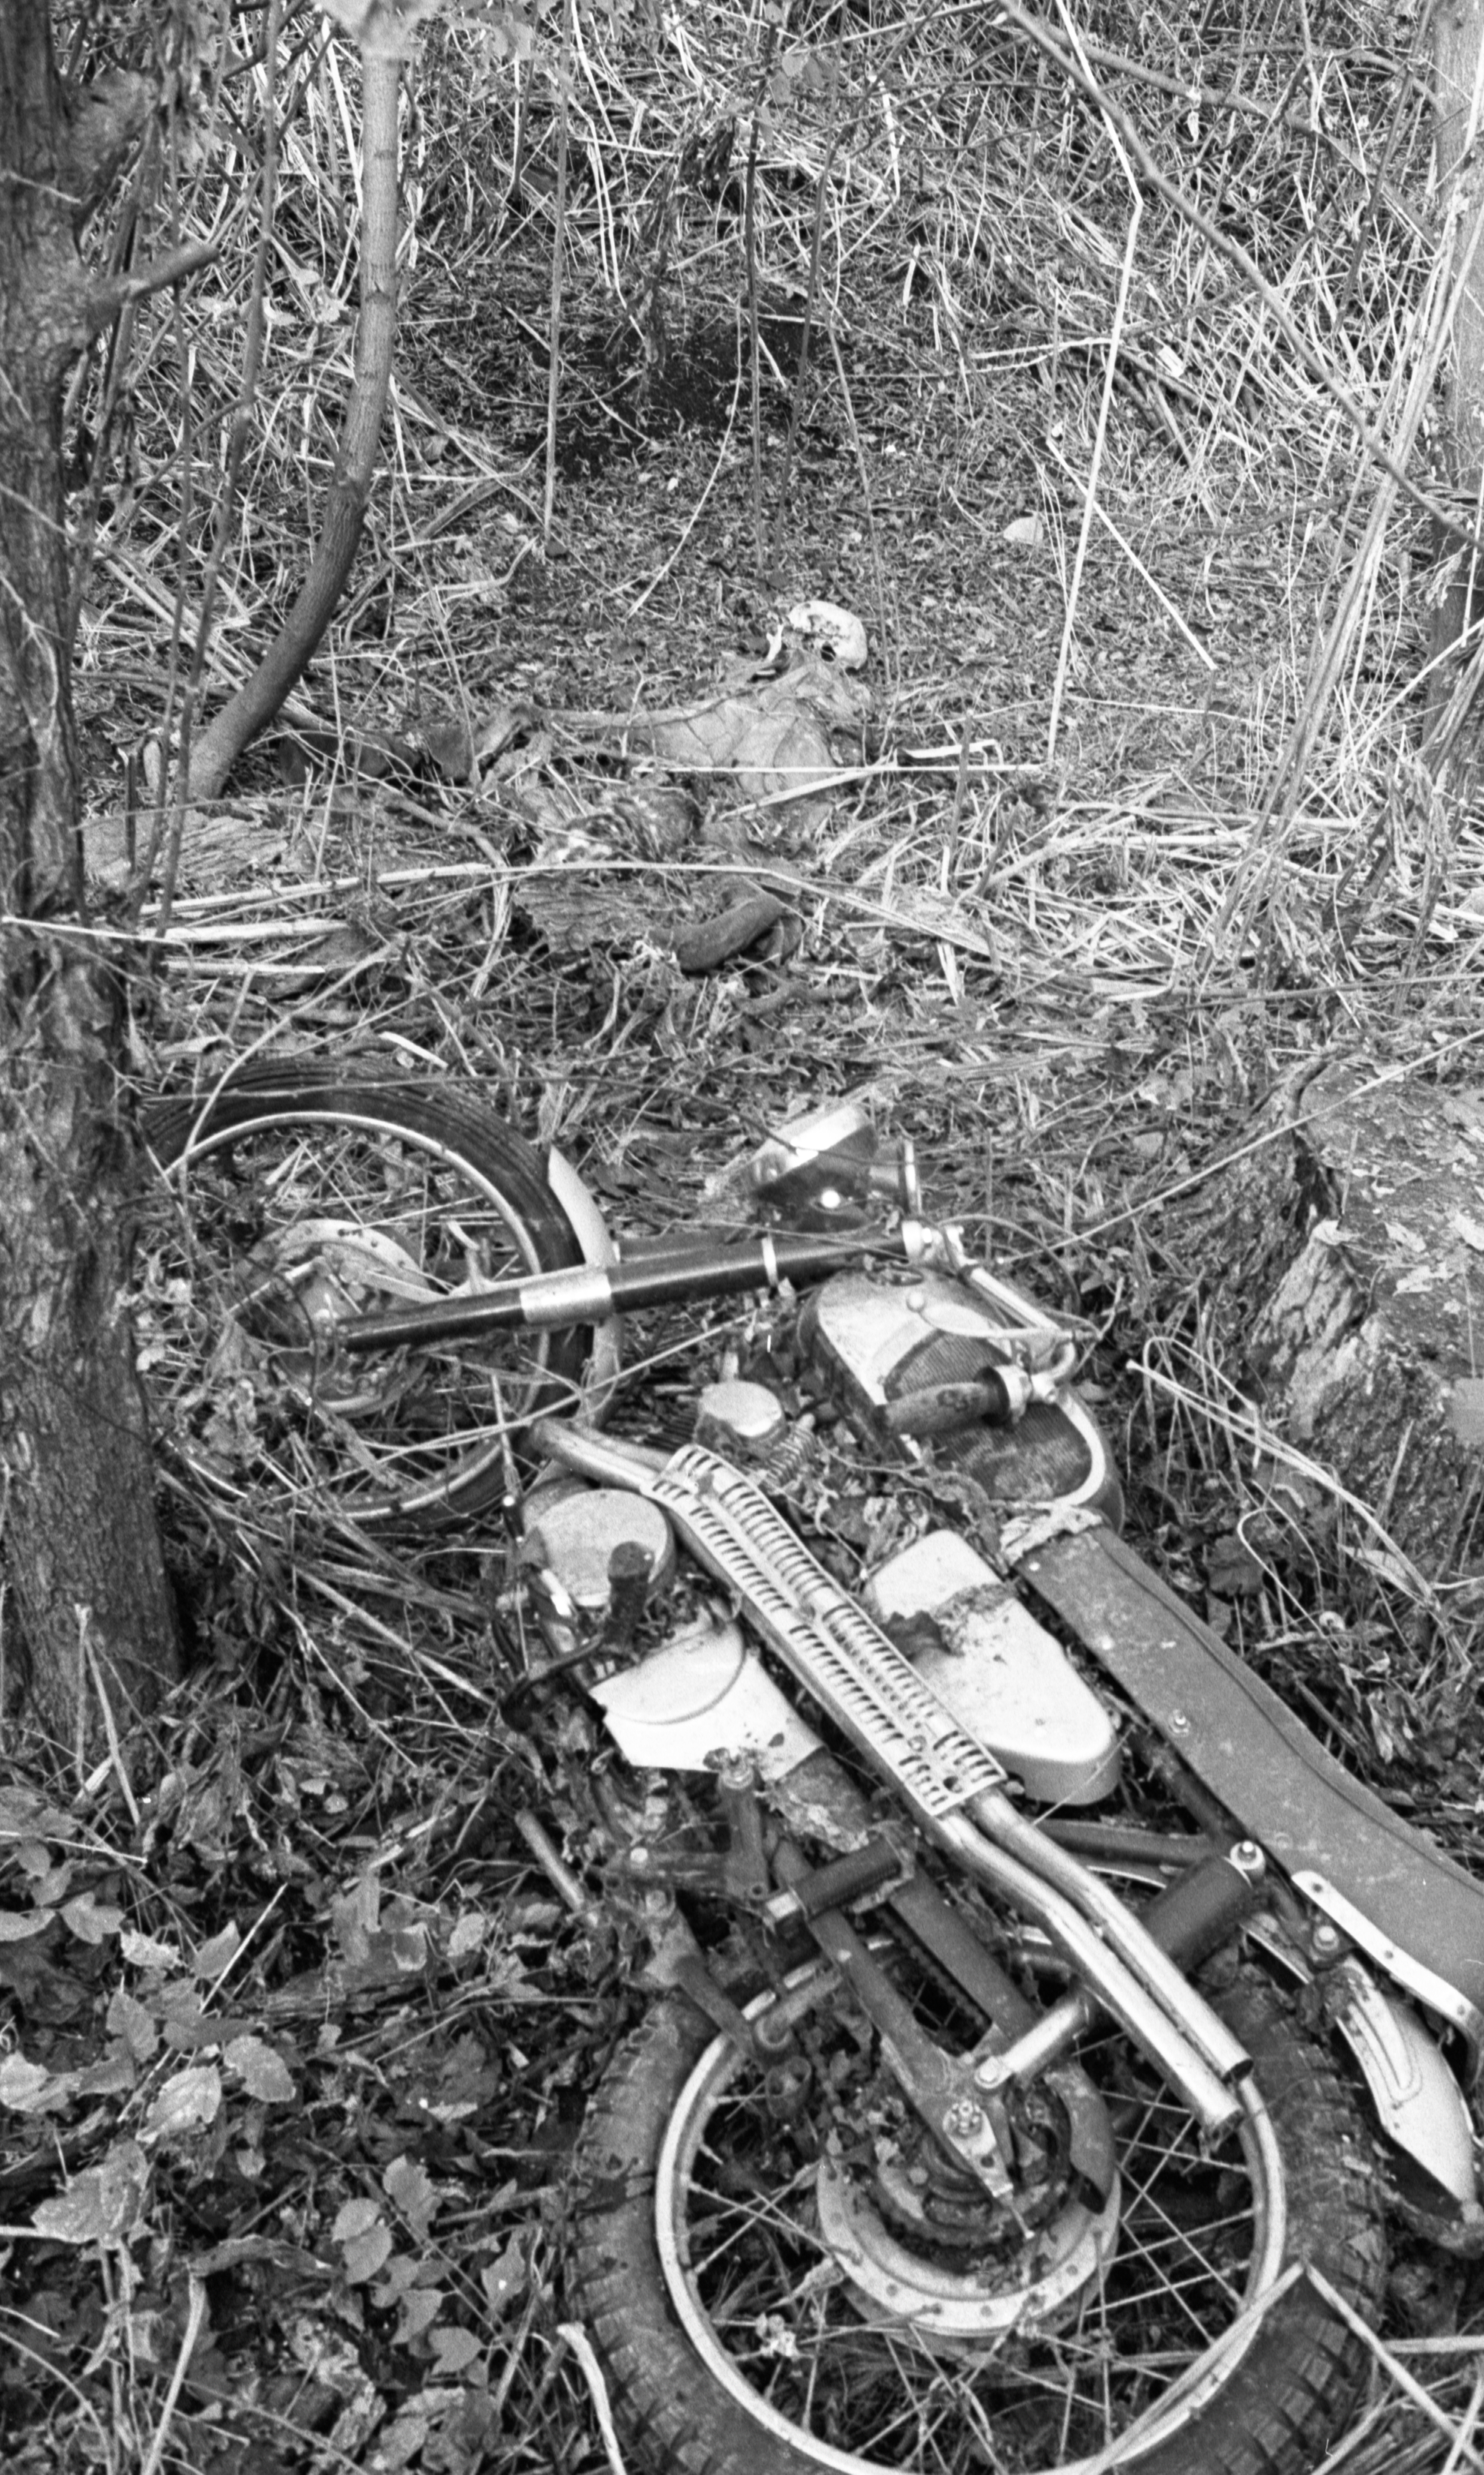 Motorcycle And Skeleton Discovered In Woods, October 1968 image